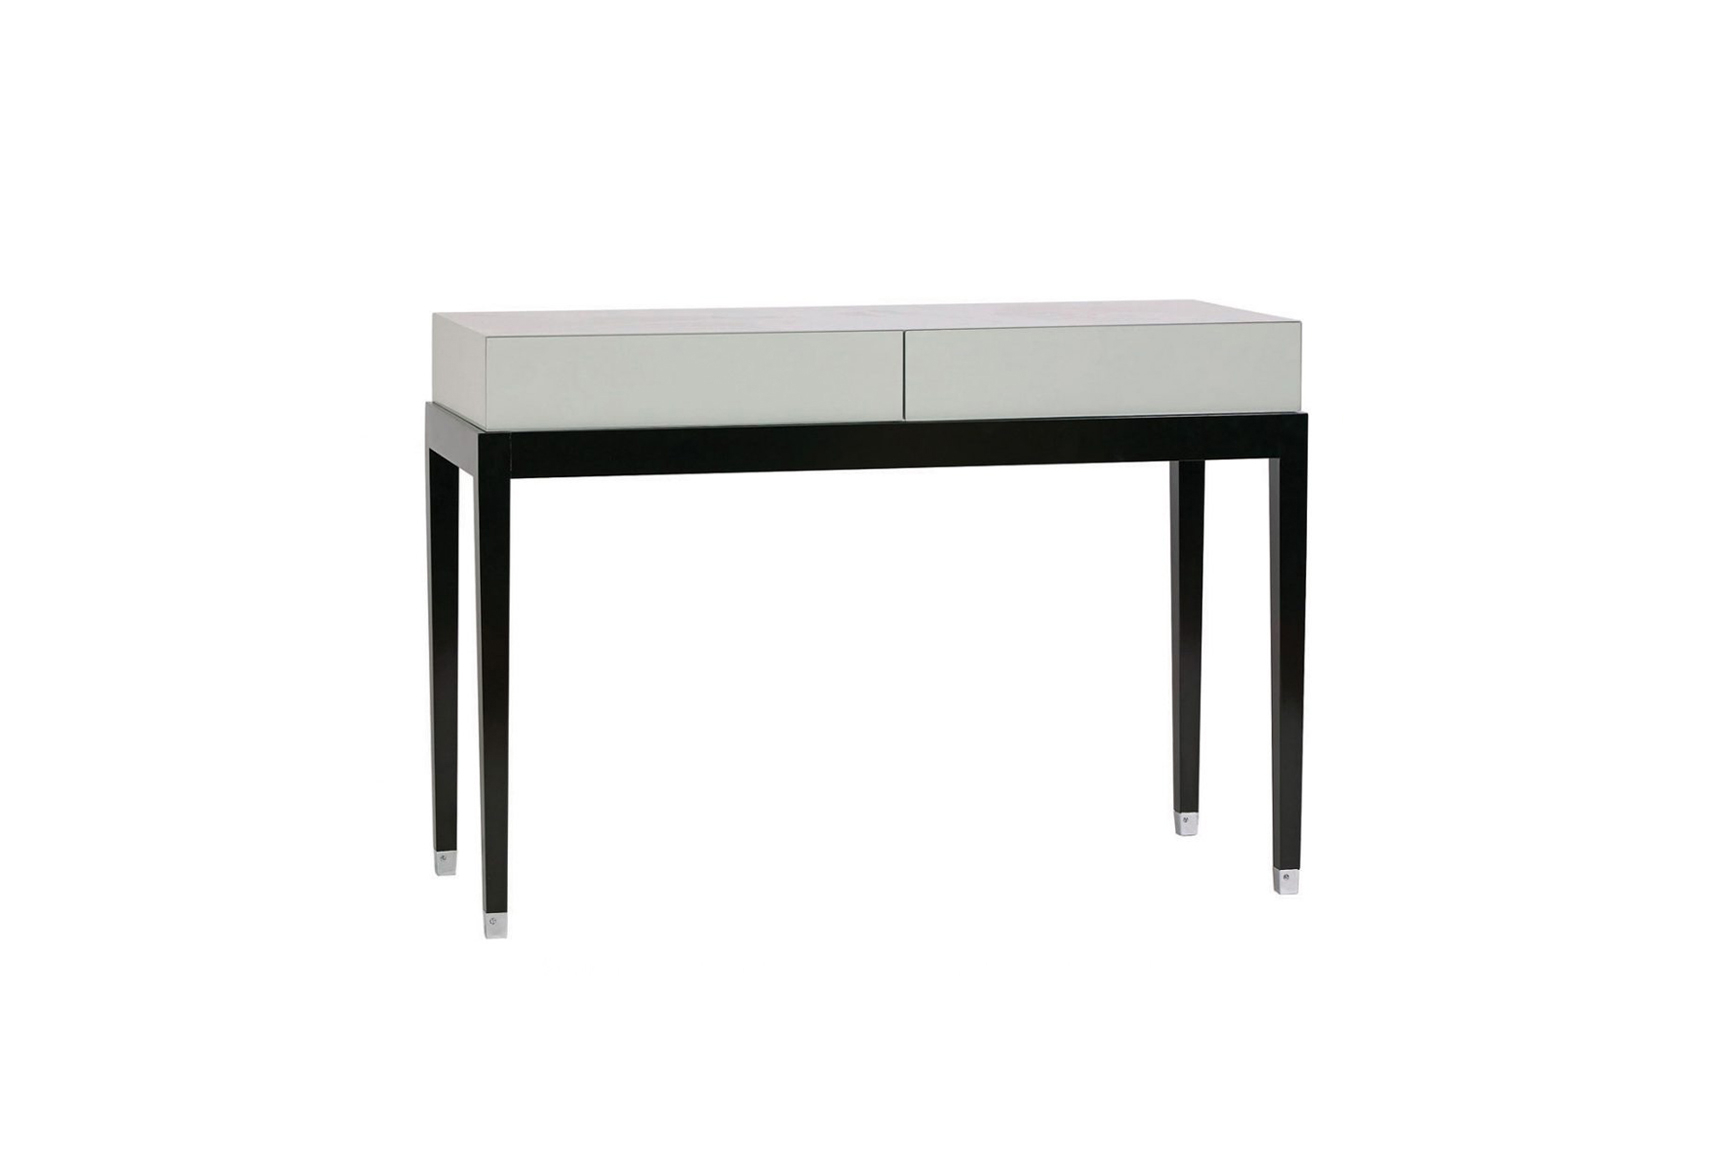 Console Tables Archives - Jan Cavelle within Archive Grey Console Tables (Image 13 of 30)